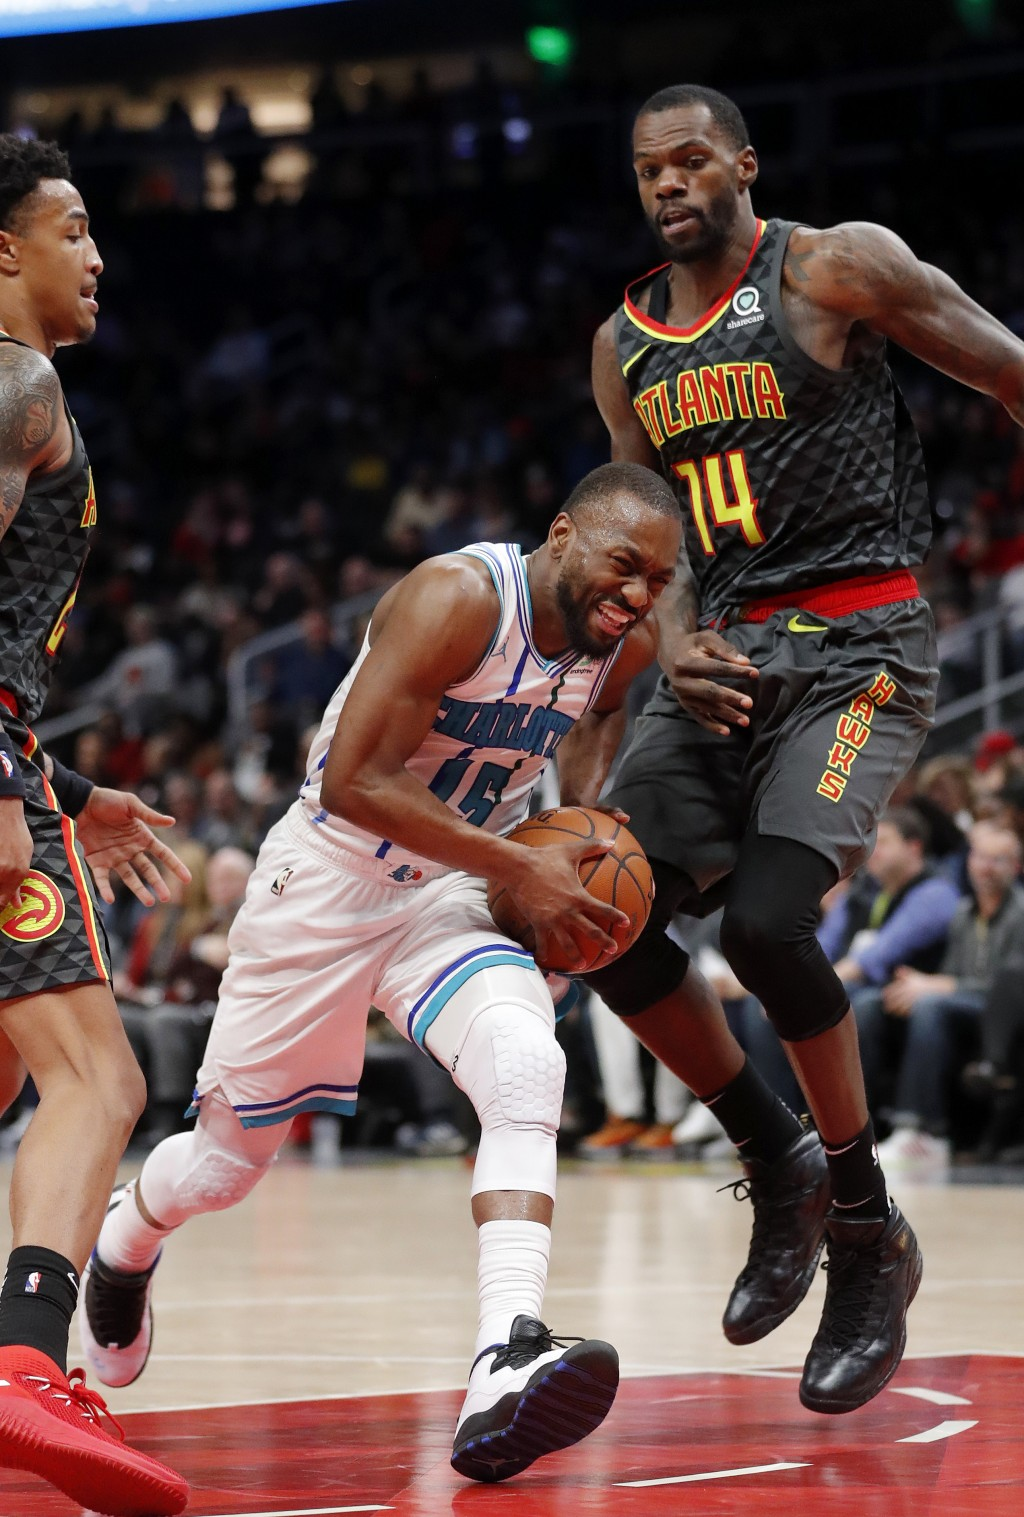 Charlotte Hornets guard Kemba Walker (15) drives against Atlanta Hawks center Dewayne Dedmon (14) during the second half of an NBA basketball Saturday